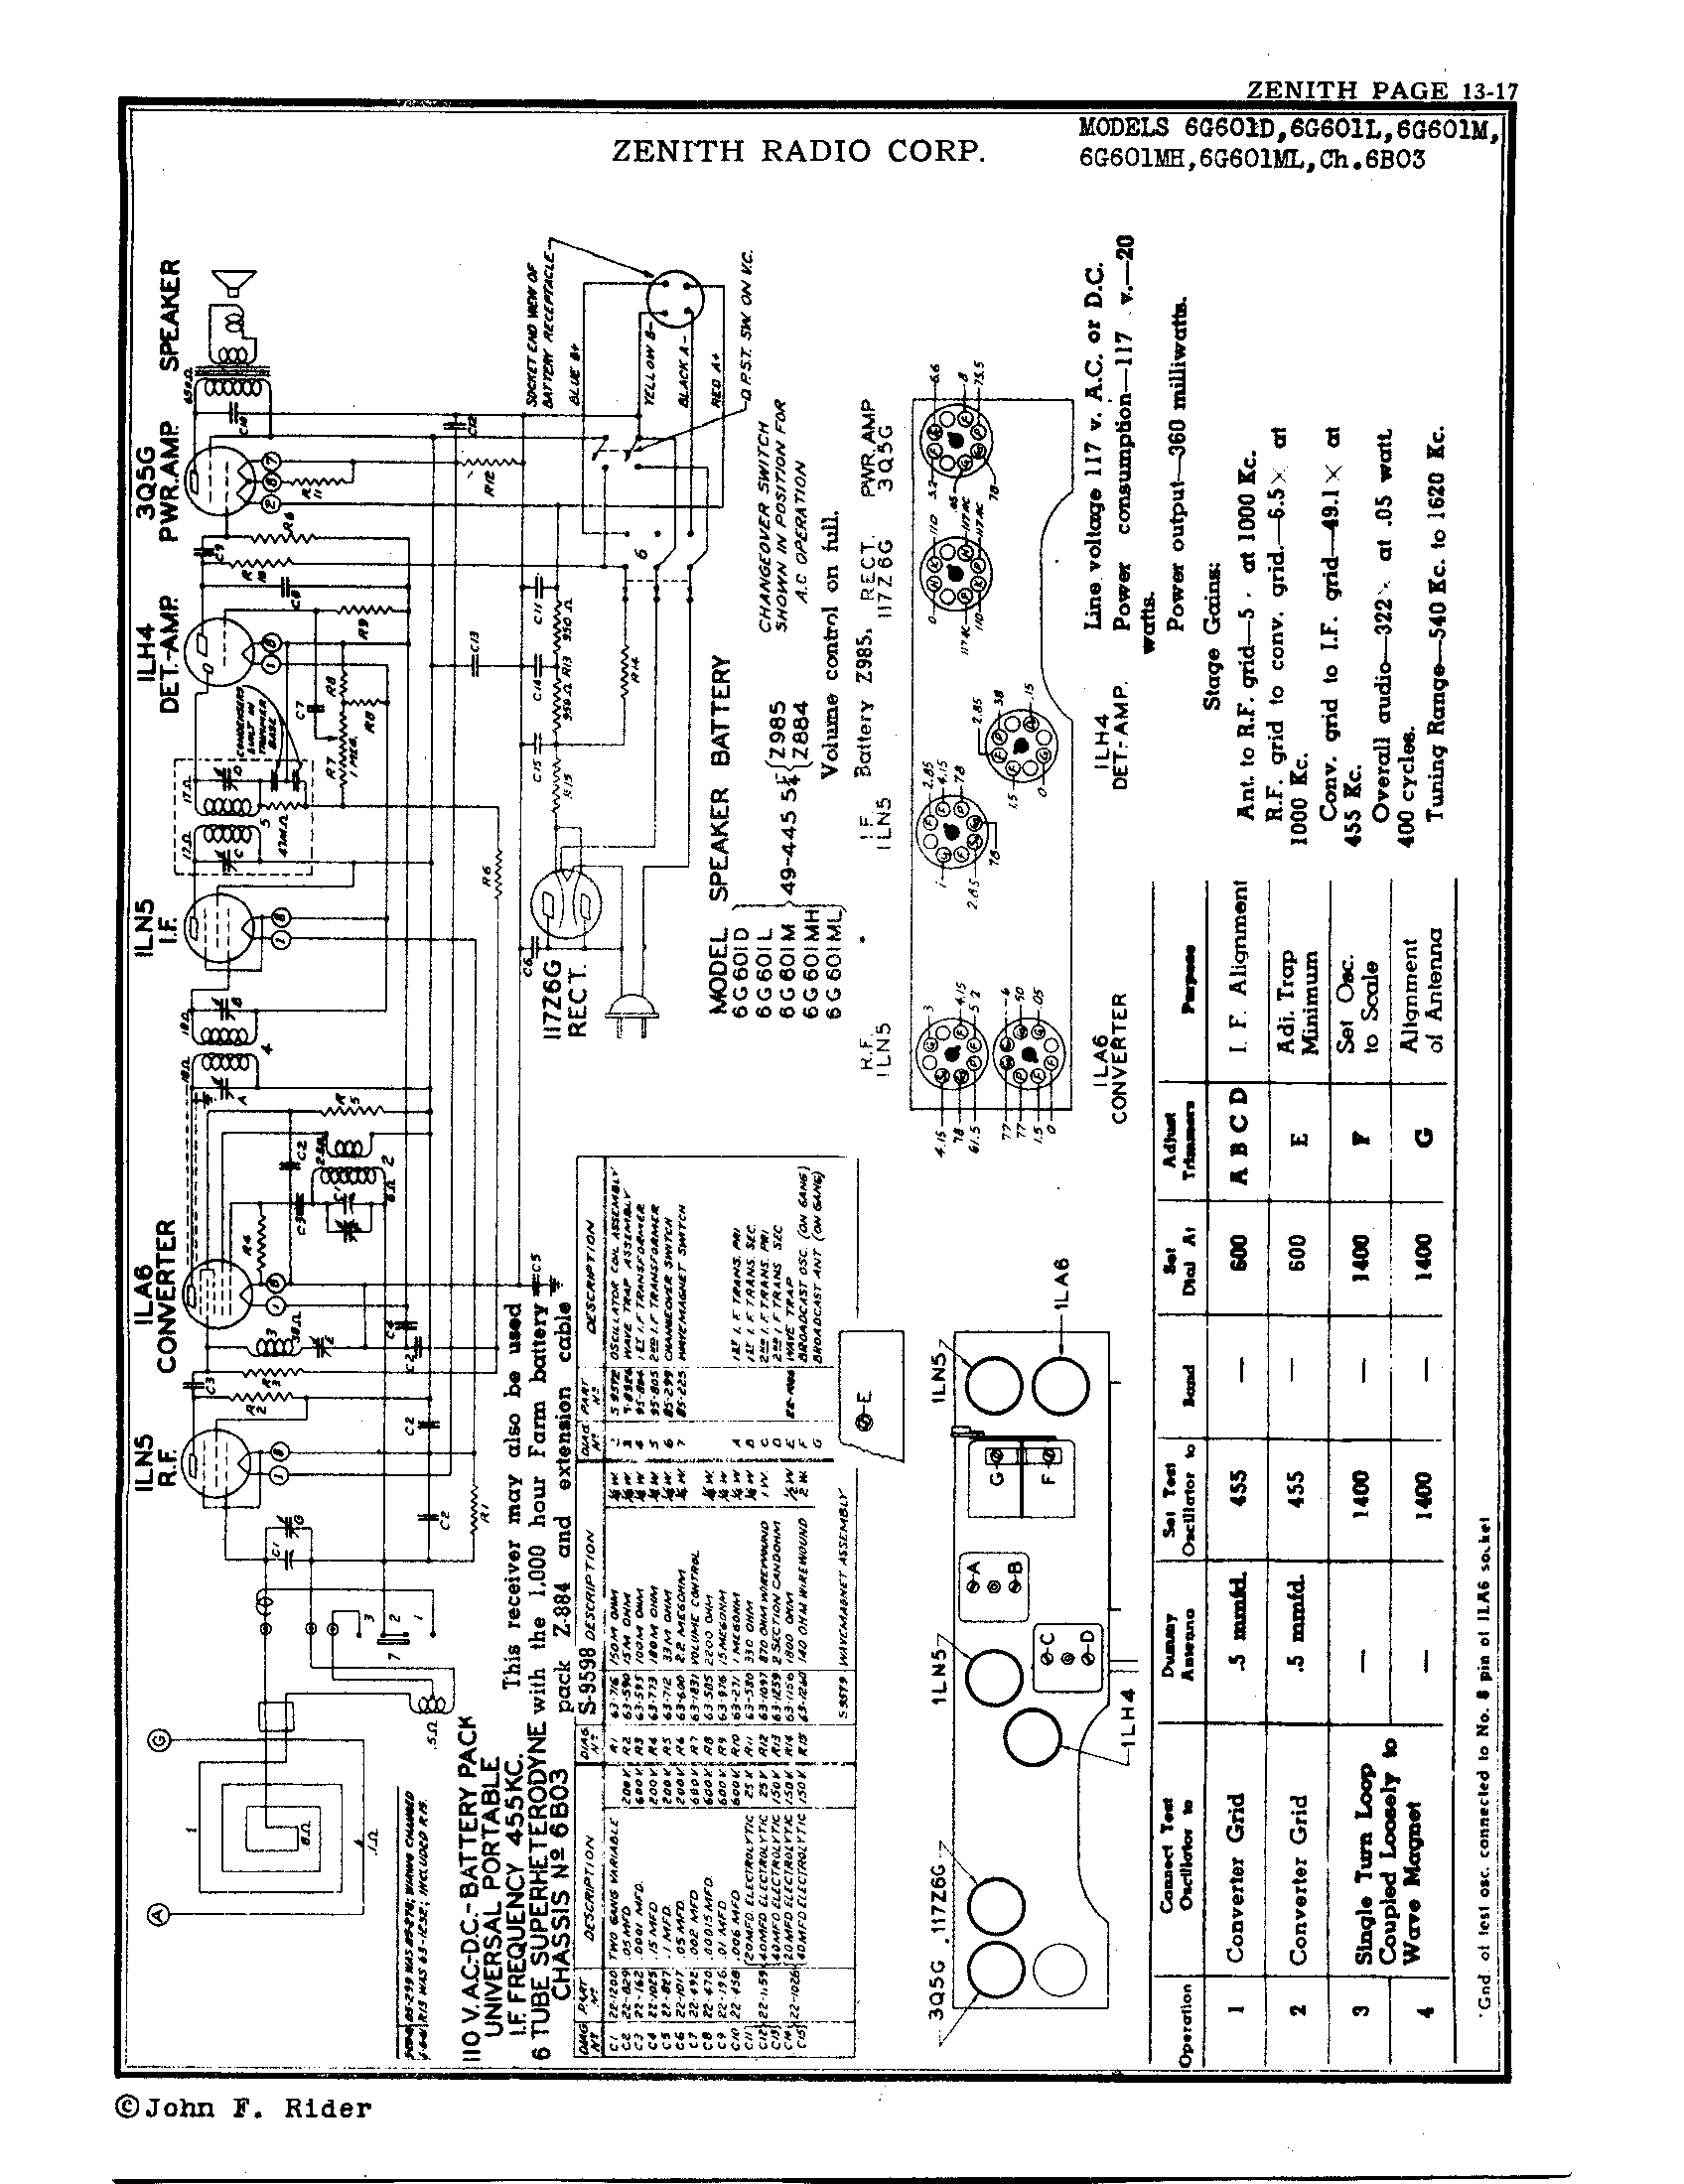 Zenith Radio Corp 6g601m Antique Electronic Supply. Page 1 834 Kb Rider Manual Volume 13. Wiring. Zenith Tube Radio Schematics N73 1 At Scoala.co